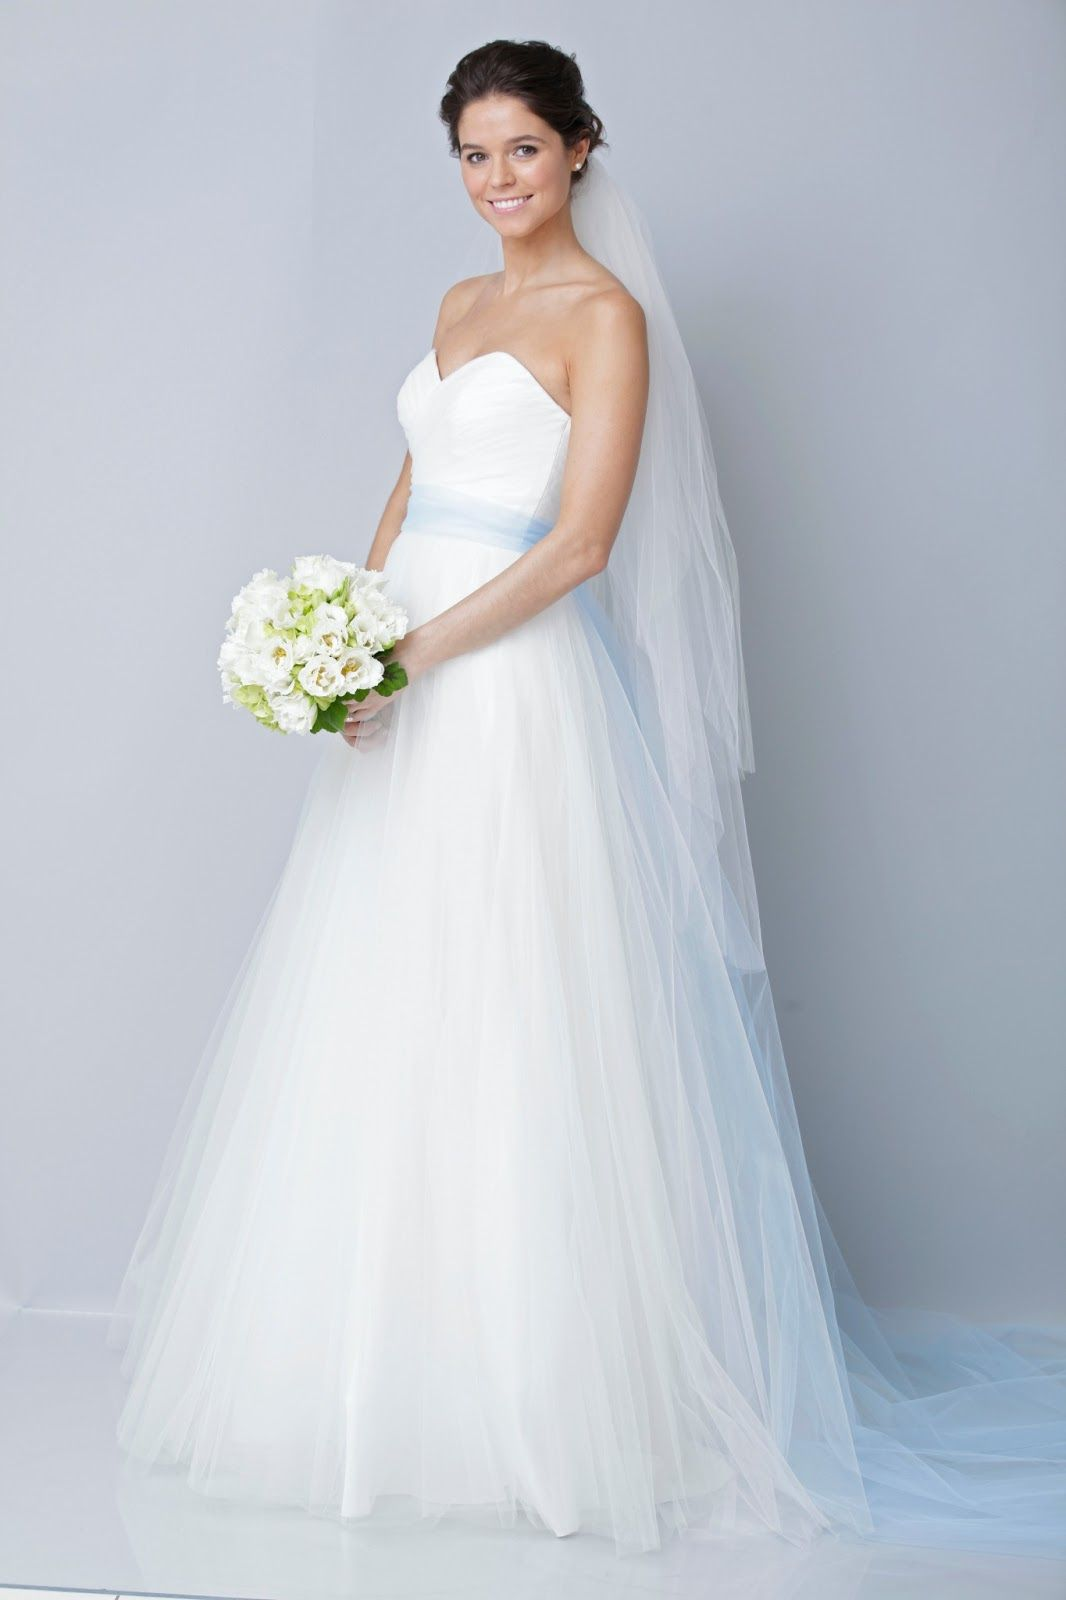 White Dress for Wedding  Dresses for Wedding Reception Check